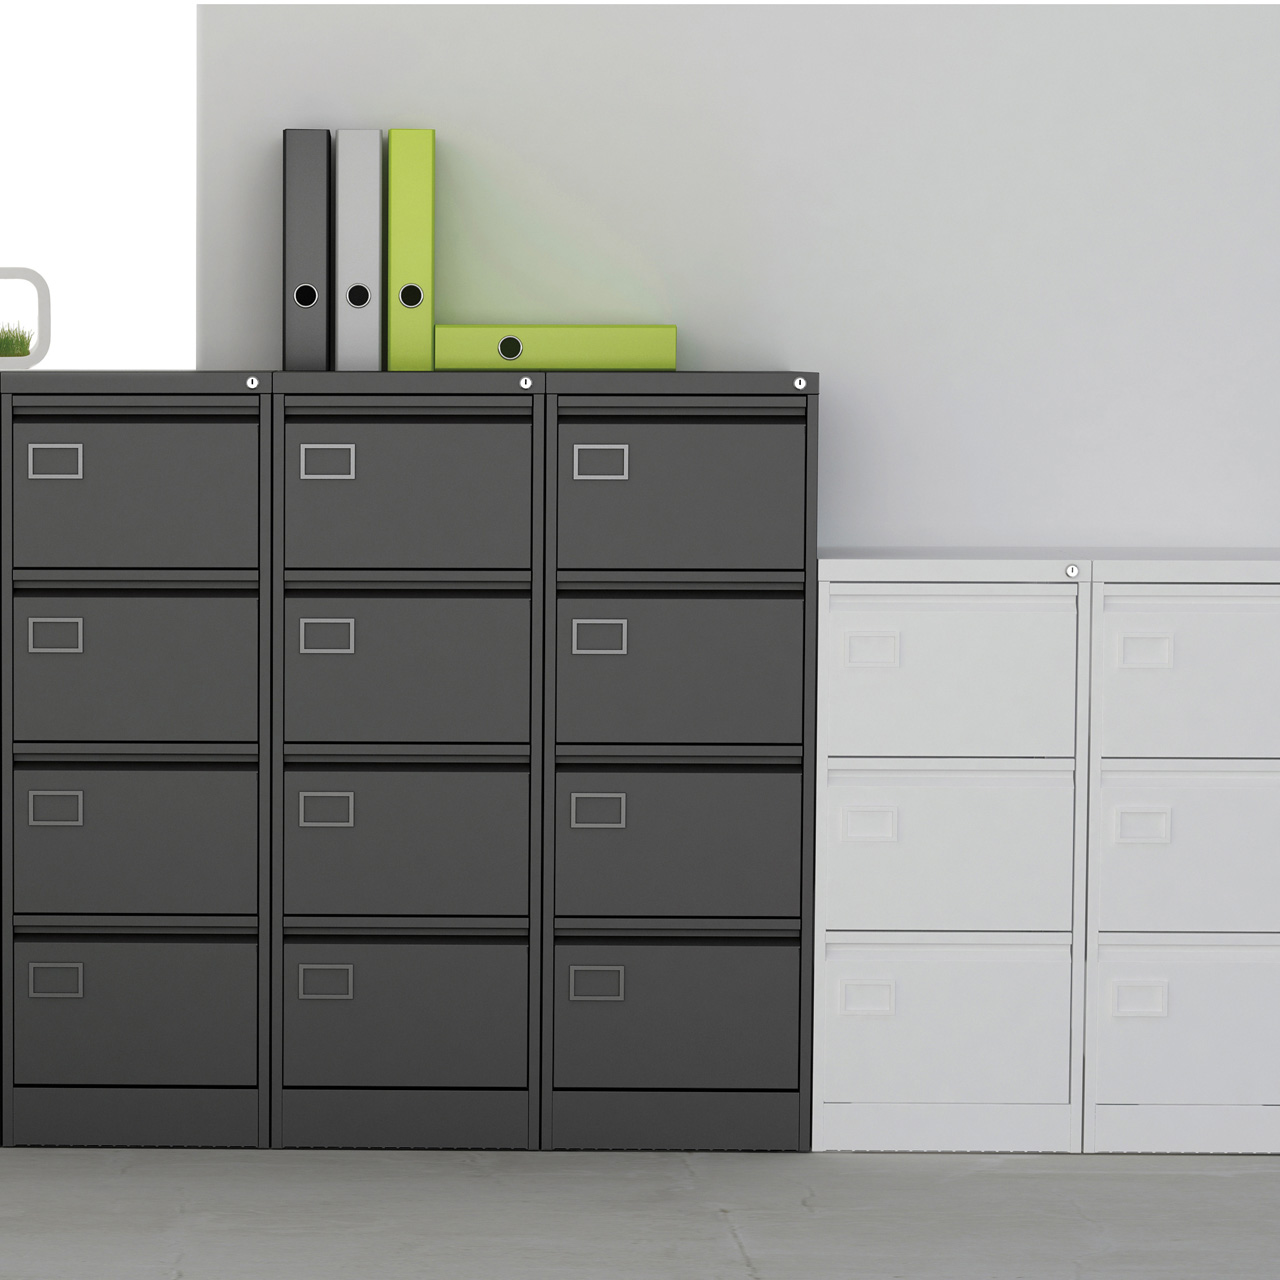 Innovative Lloyd George Filing Cabinet Available To Buy Online At Williams